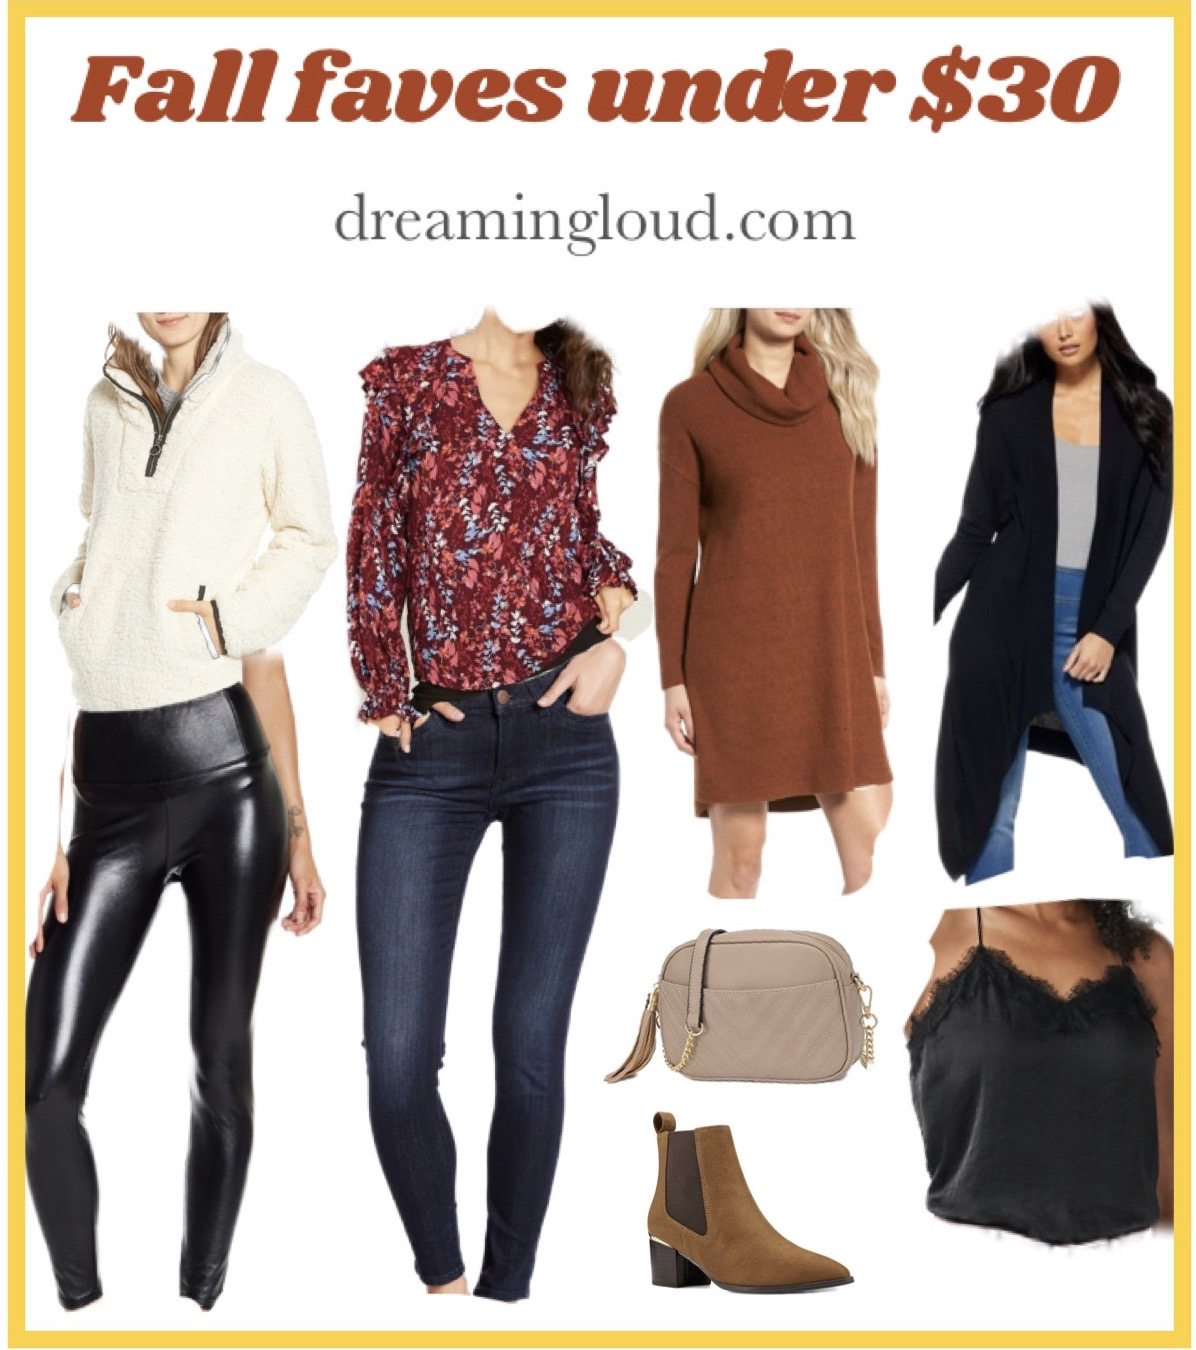 Affordable Style Fall Favorited Under $30 | Fall Favorites by popular Maryland modest fashion blog, Dreaming Loud: collage image of leather leggings, dark skinny jeans, quilted purse, brown suede ankle boot, black lace cami, sweater dress, long black cardigan, floral blouse and wubby fleece pull over.